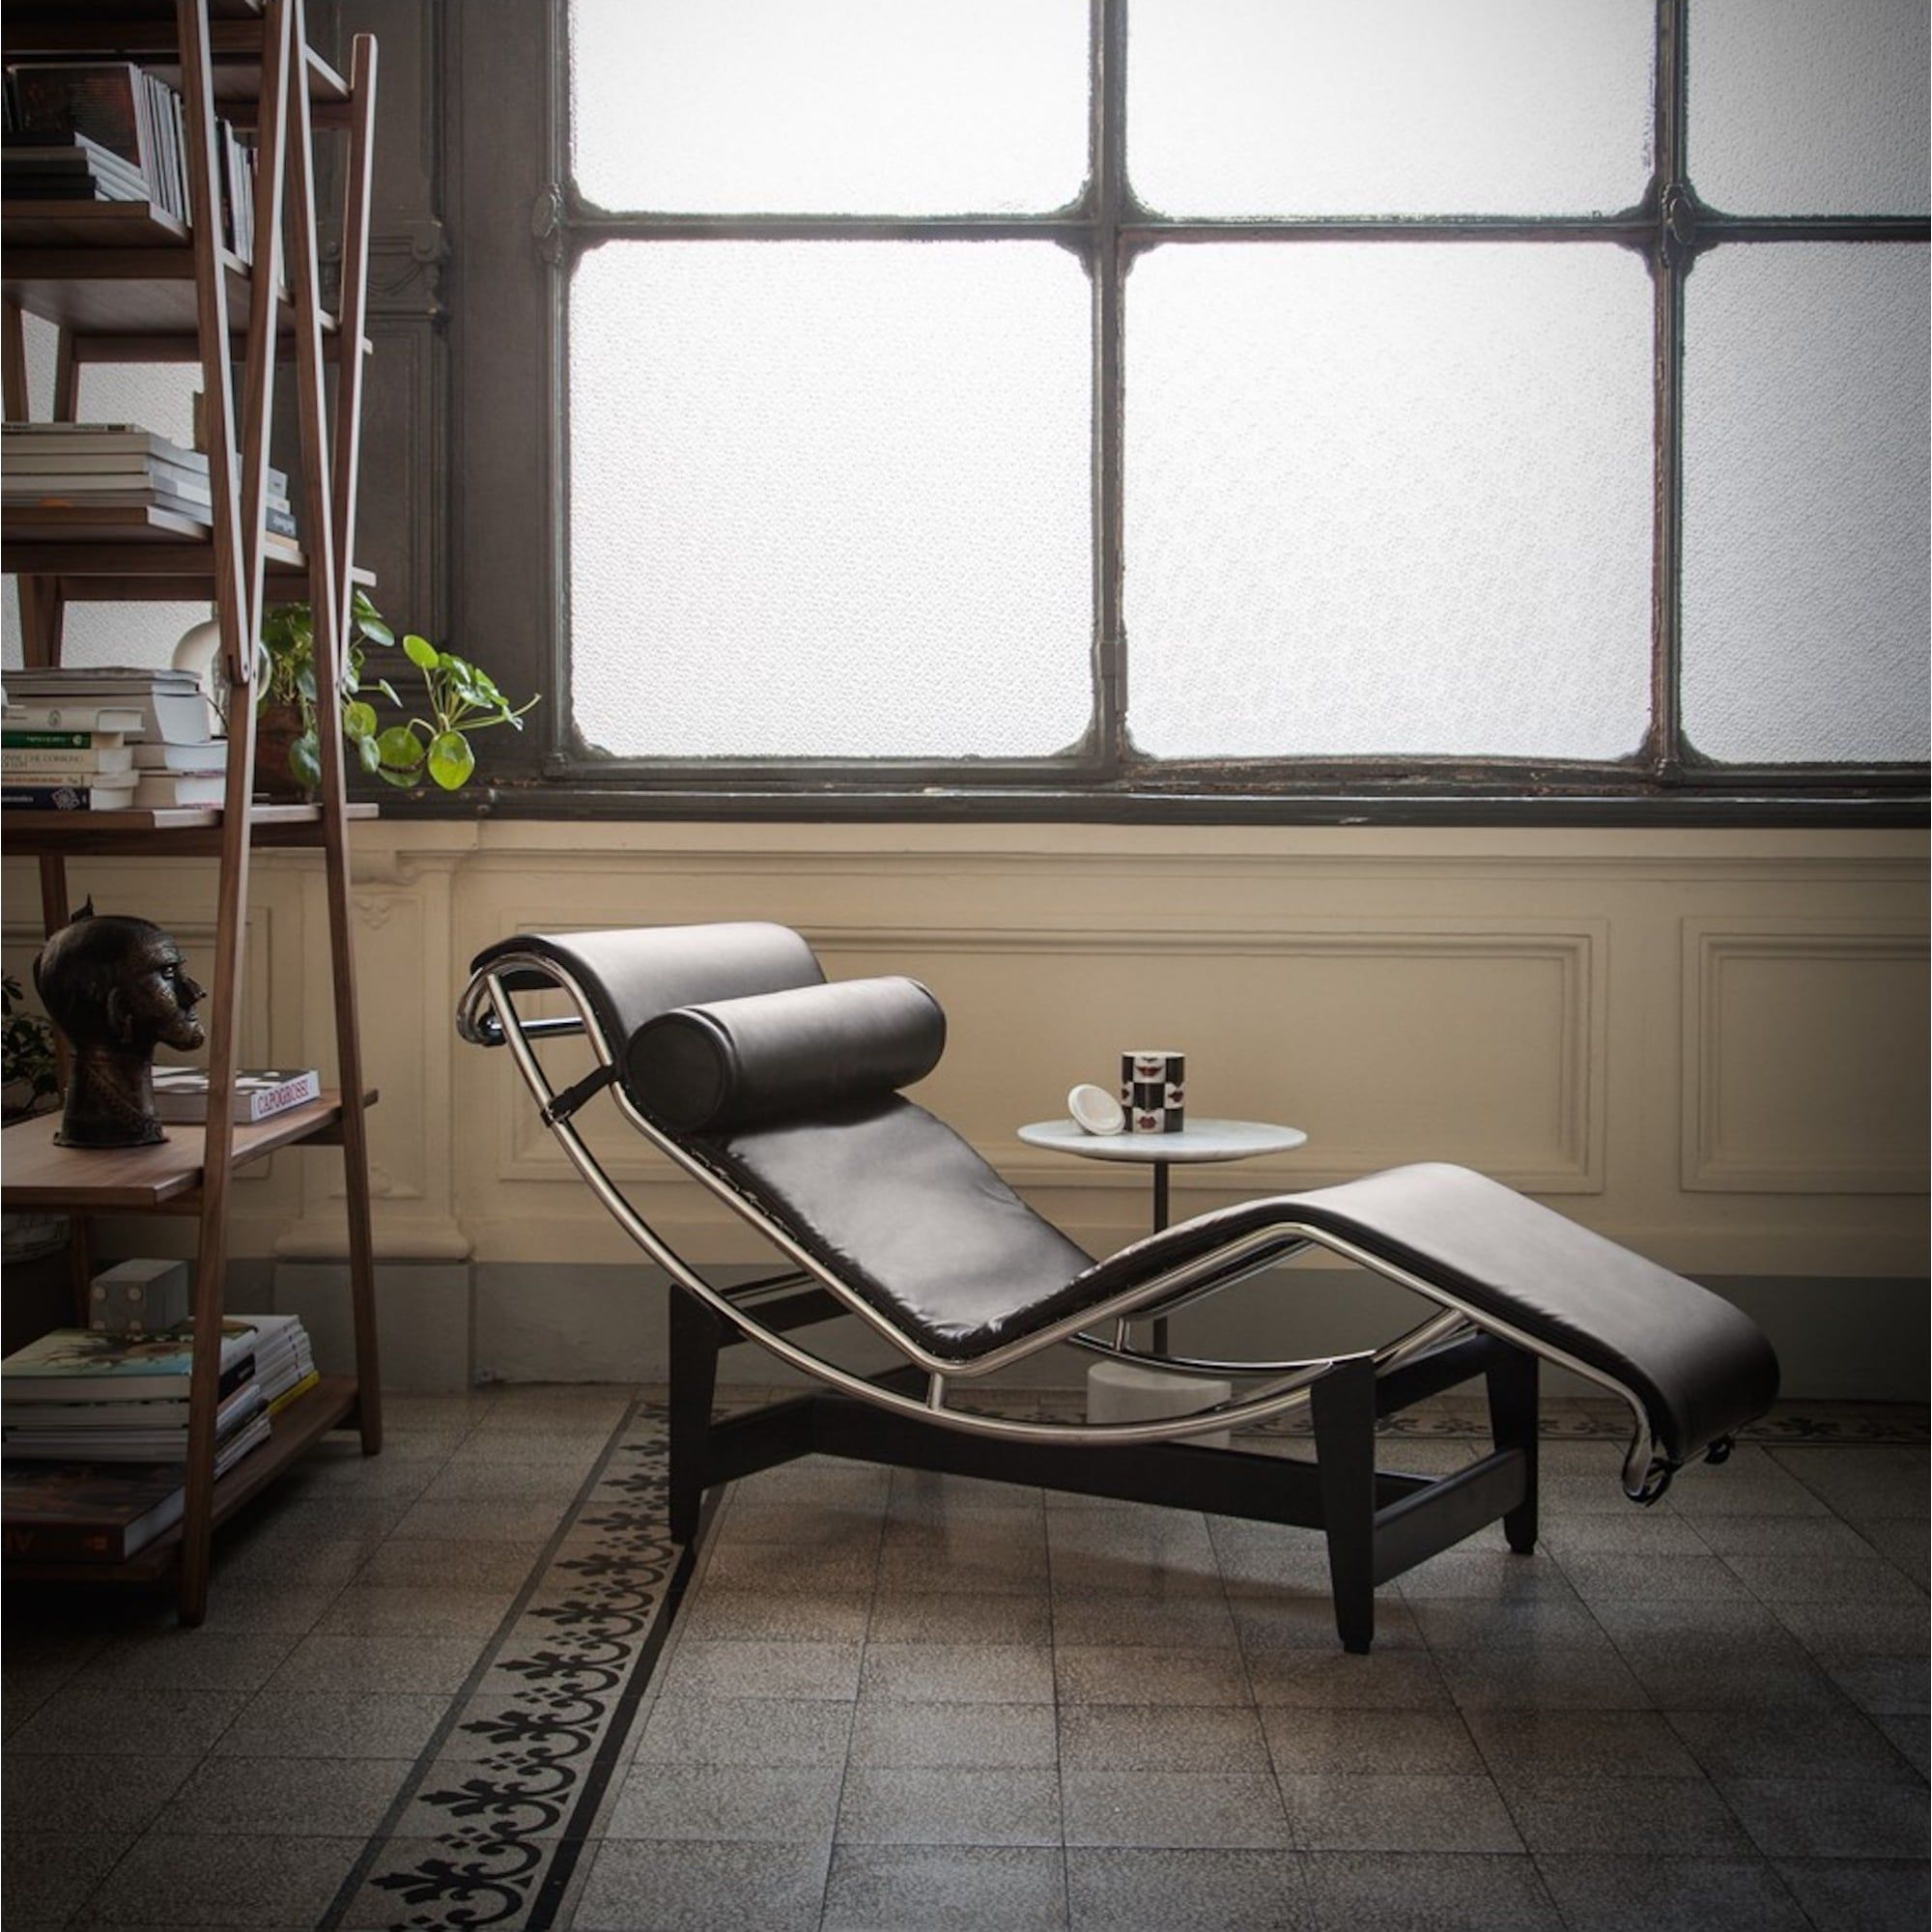 Idea By Firmino Campos On Seats In 2020 Home And Living Le Corbusier Eames Lounge Chair